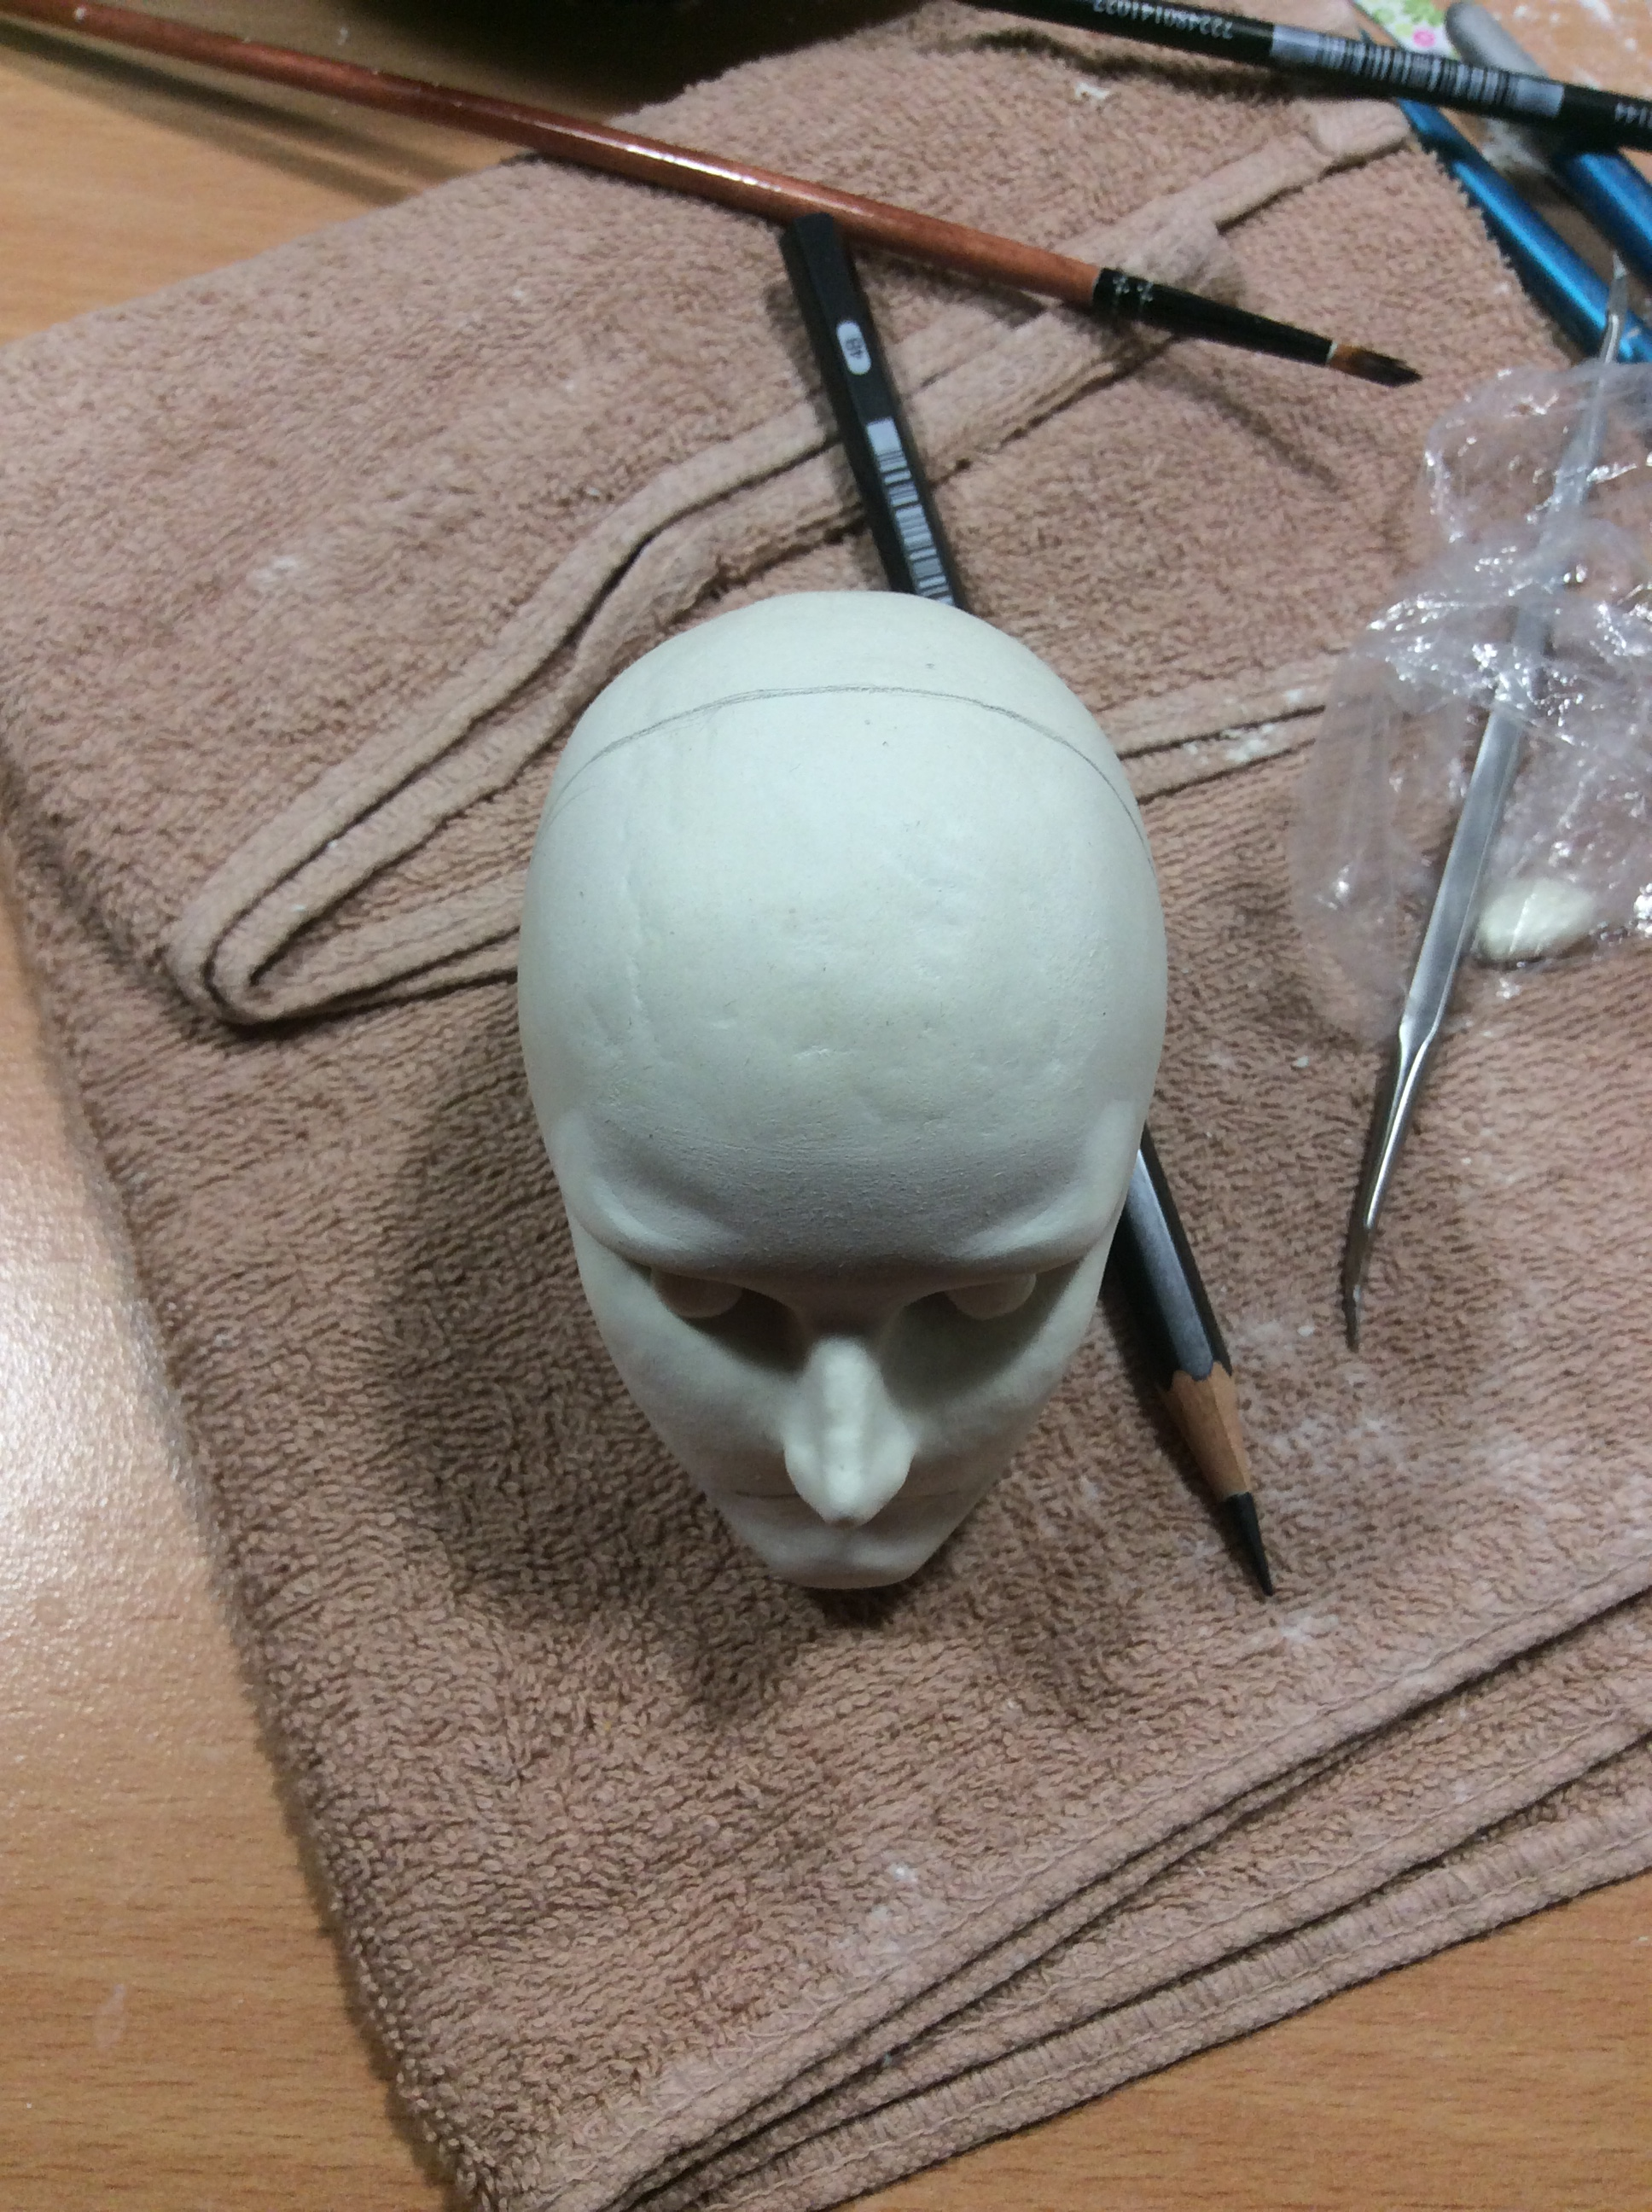 jemse---my-first-doll-head-making-progress-diary-part-2_32374202476_o